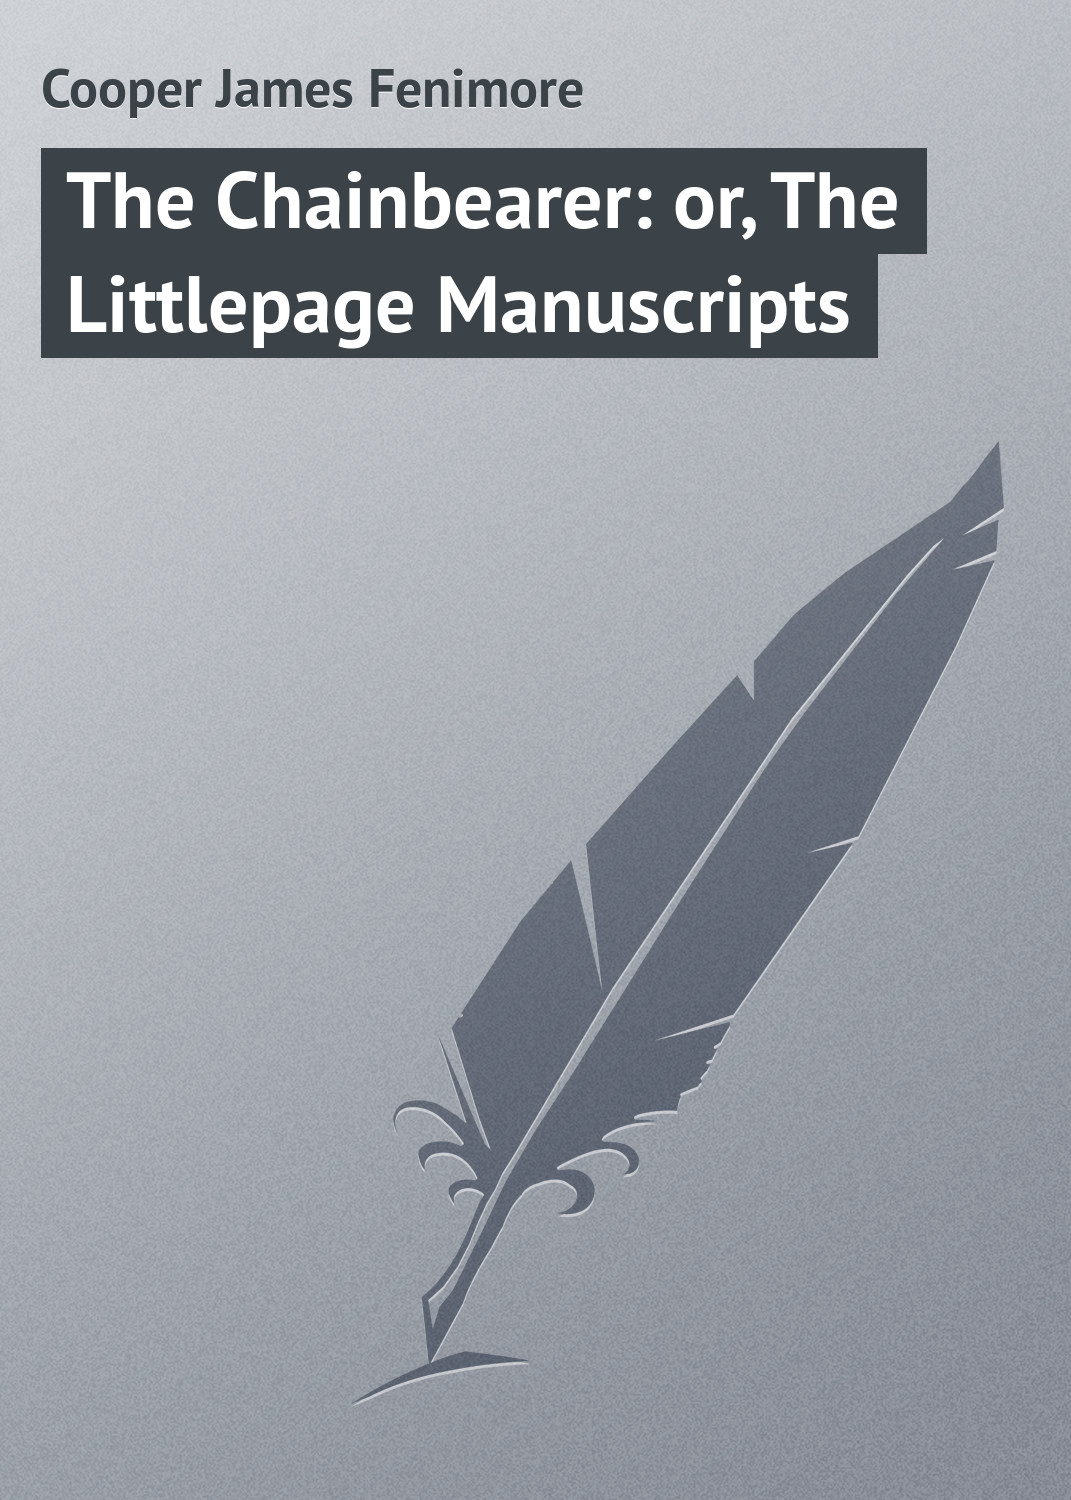 Джеймс Фенимор Купер The Chainbearer: or, The Littlepage Manuscripts automatic regonition for old arabic manuscripts